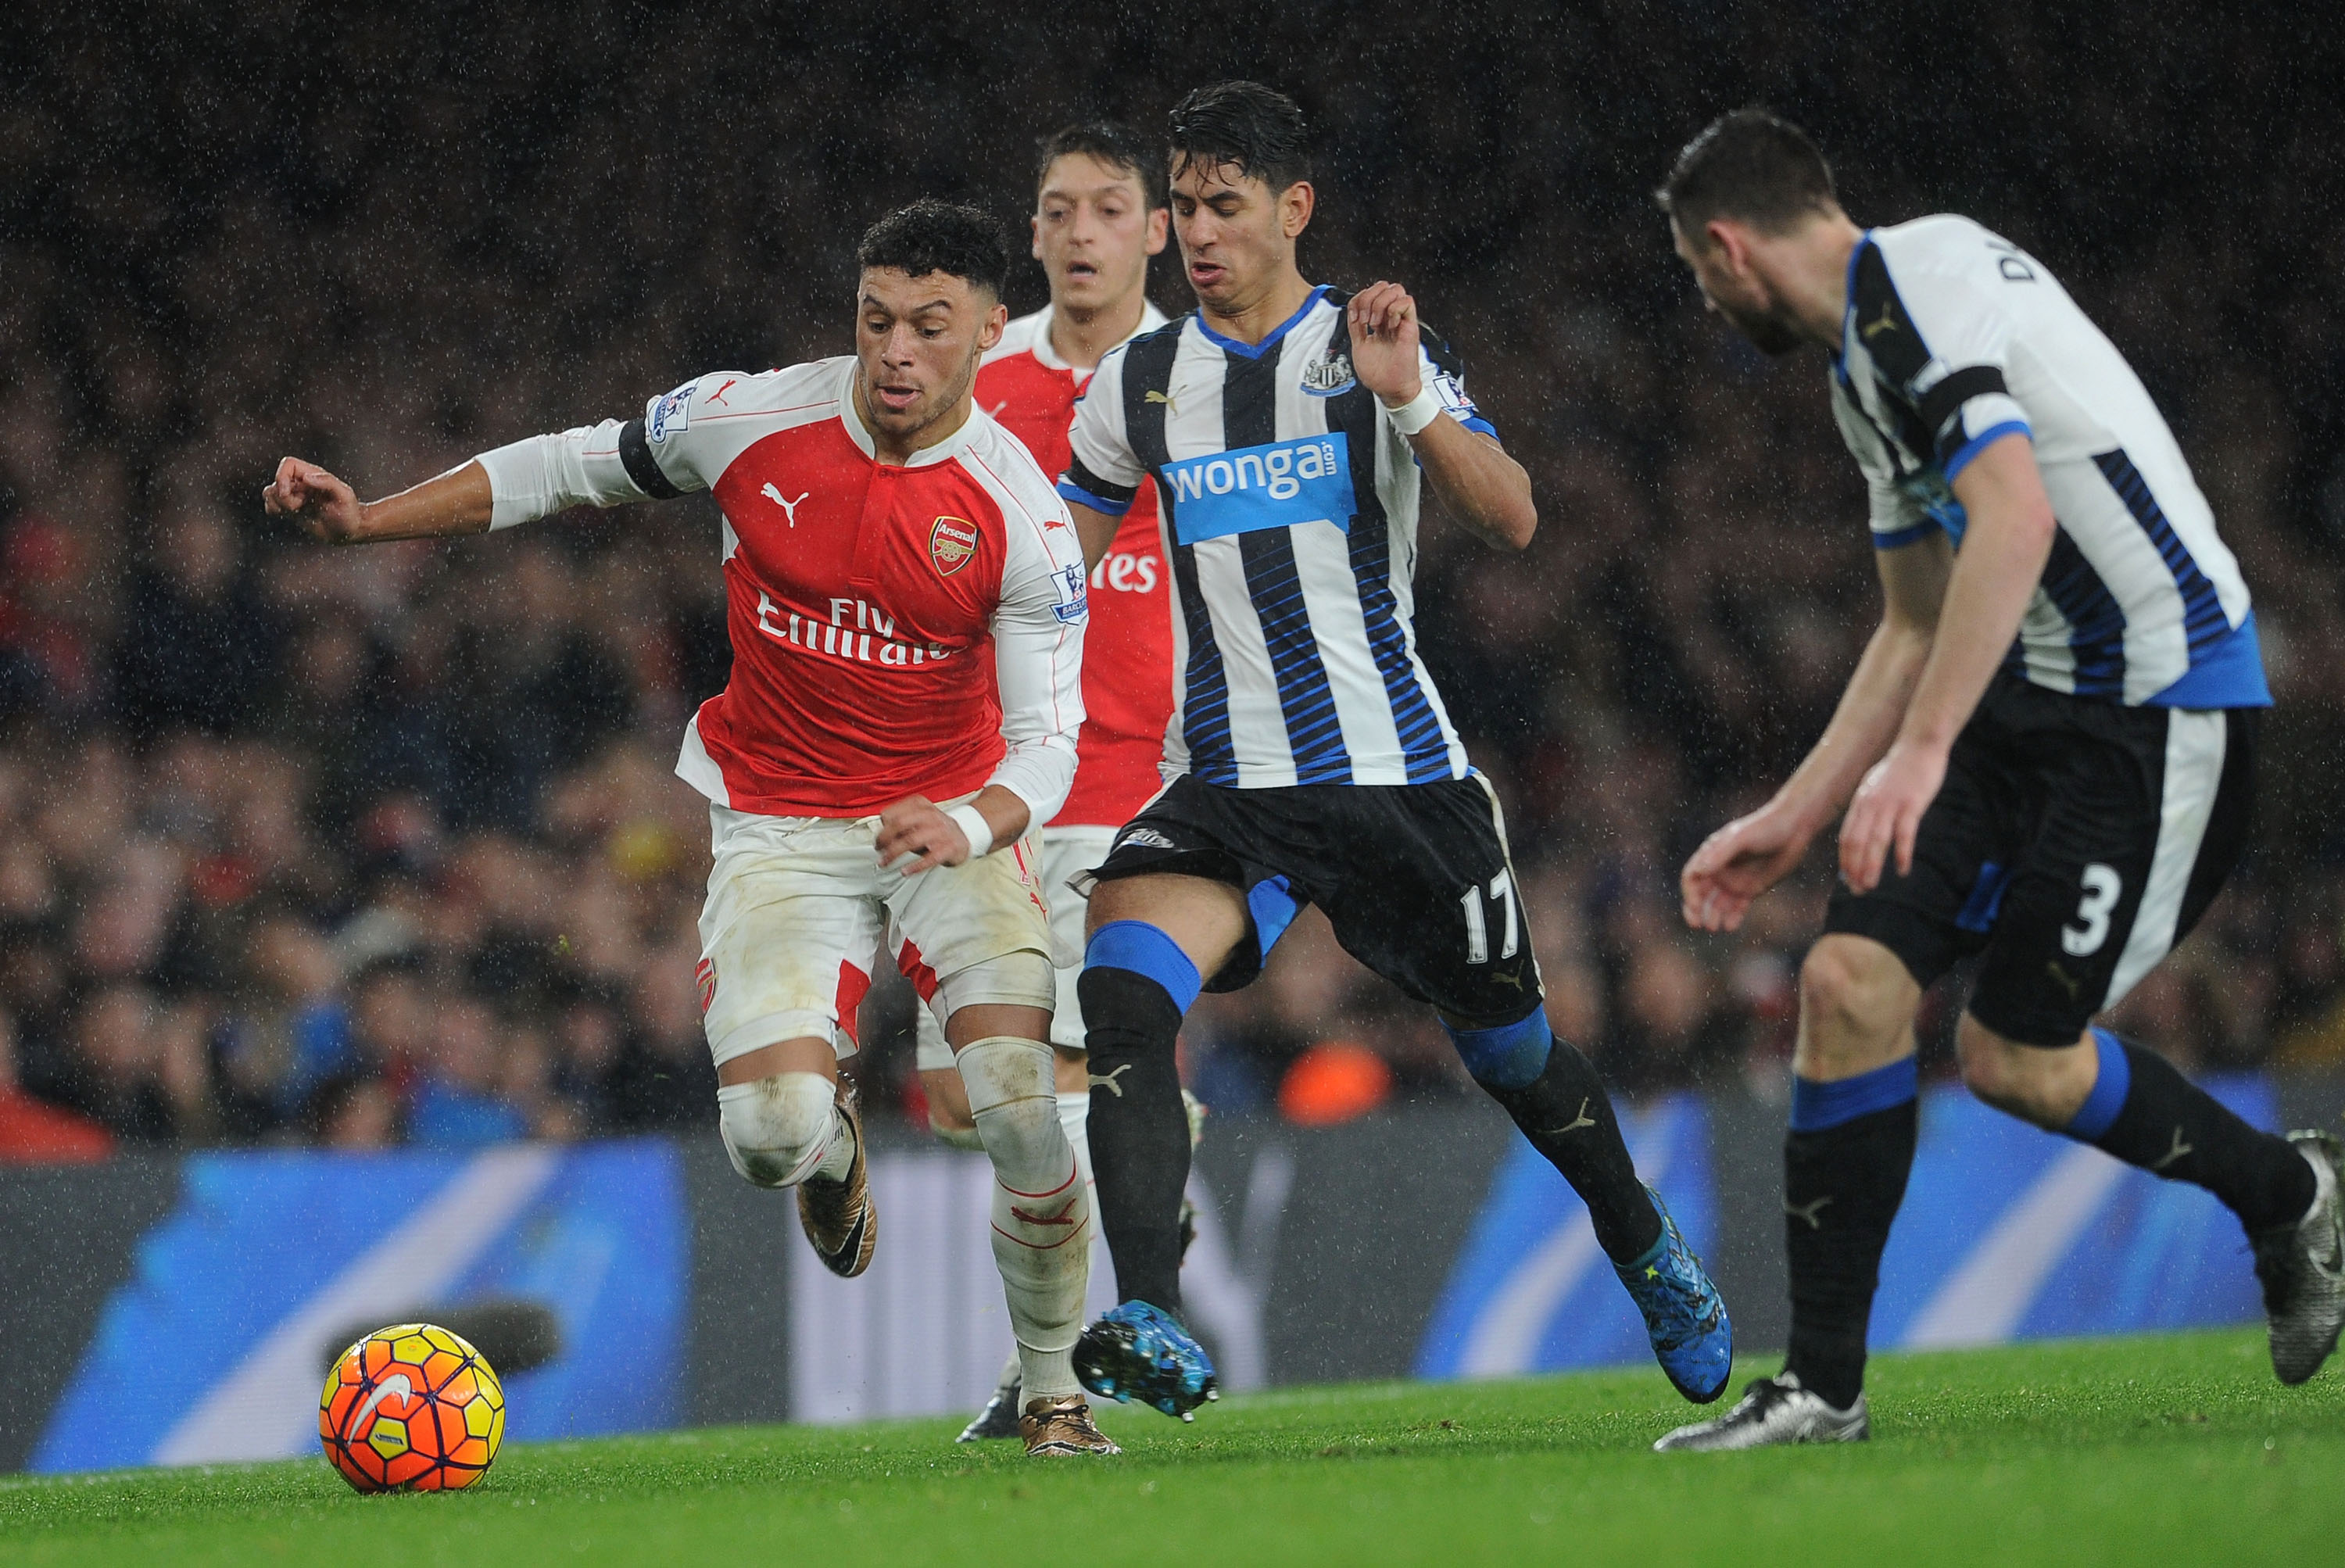 Could 2016 be make or break for Alex Oxlade-Chamberlain's Arsenal career?